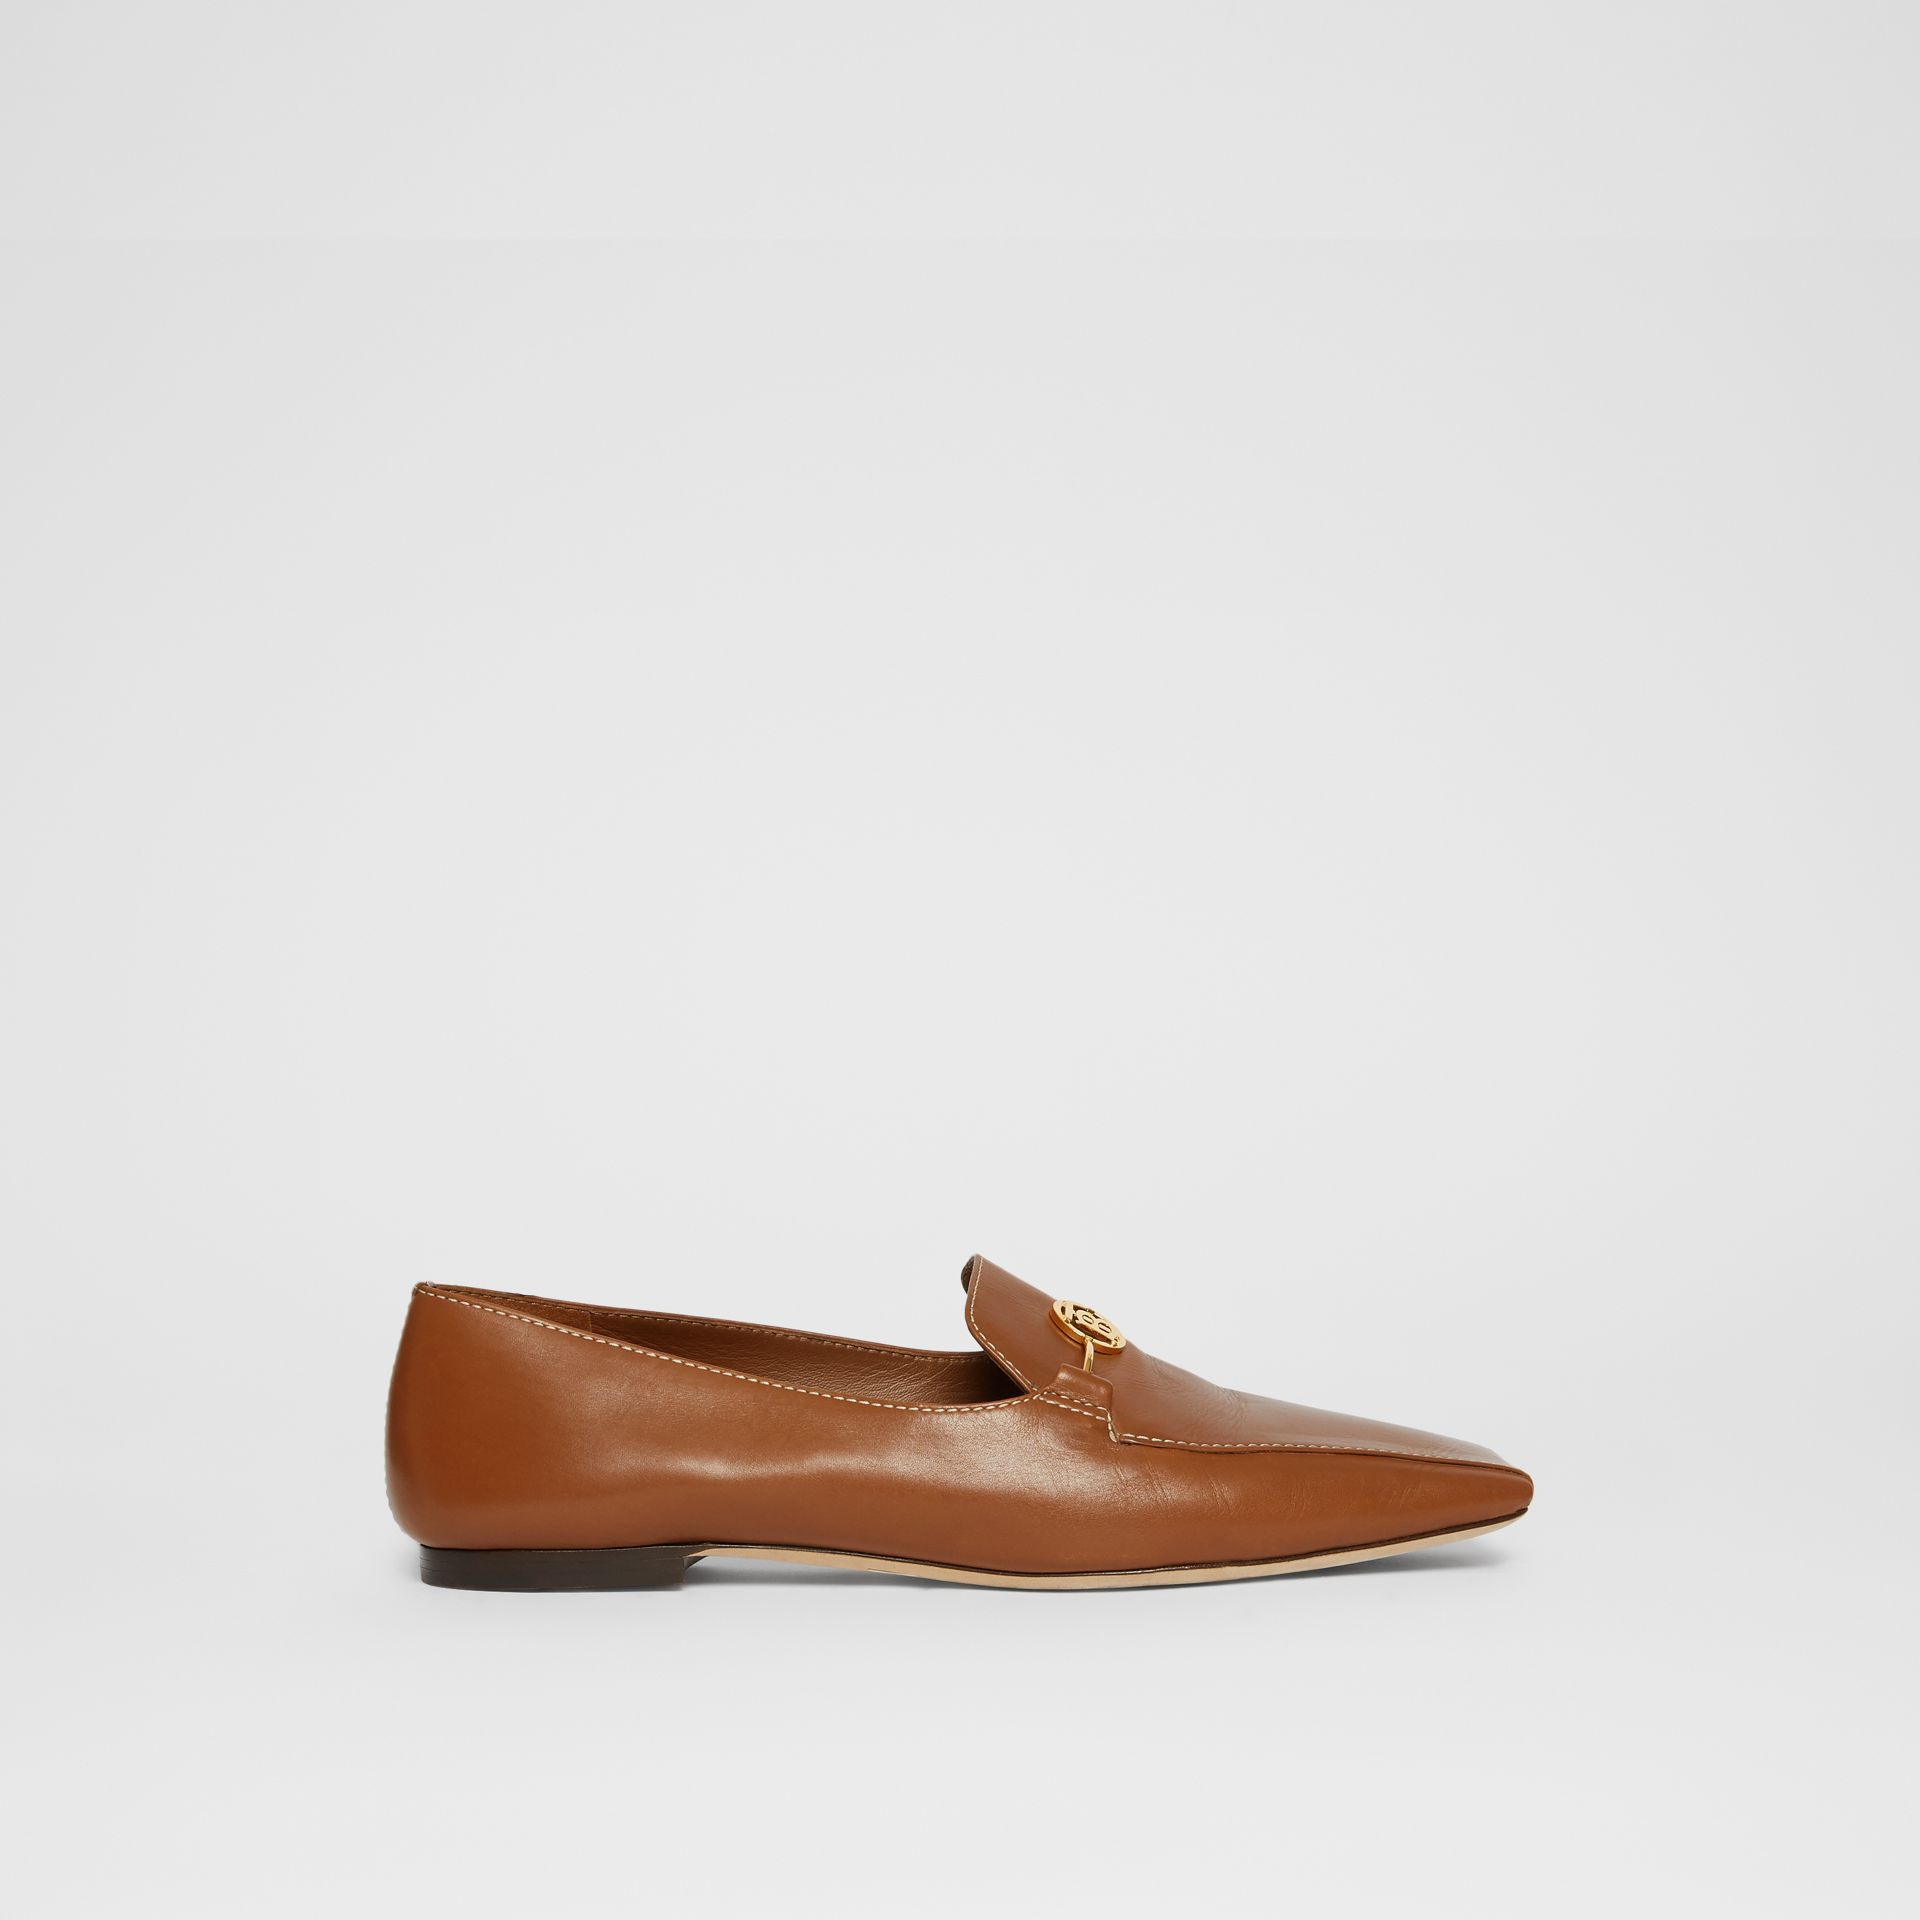 Monogram Motif Leather Loafers in Tan - Women | Burberry United States - gallery image 5